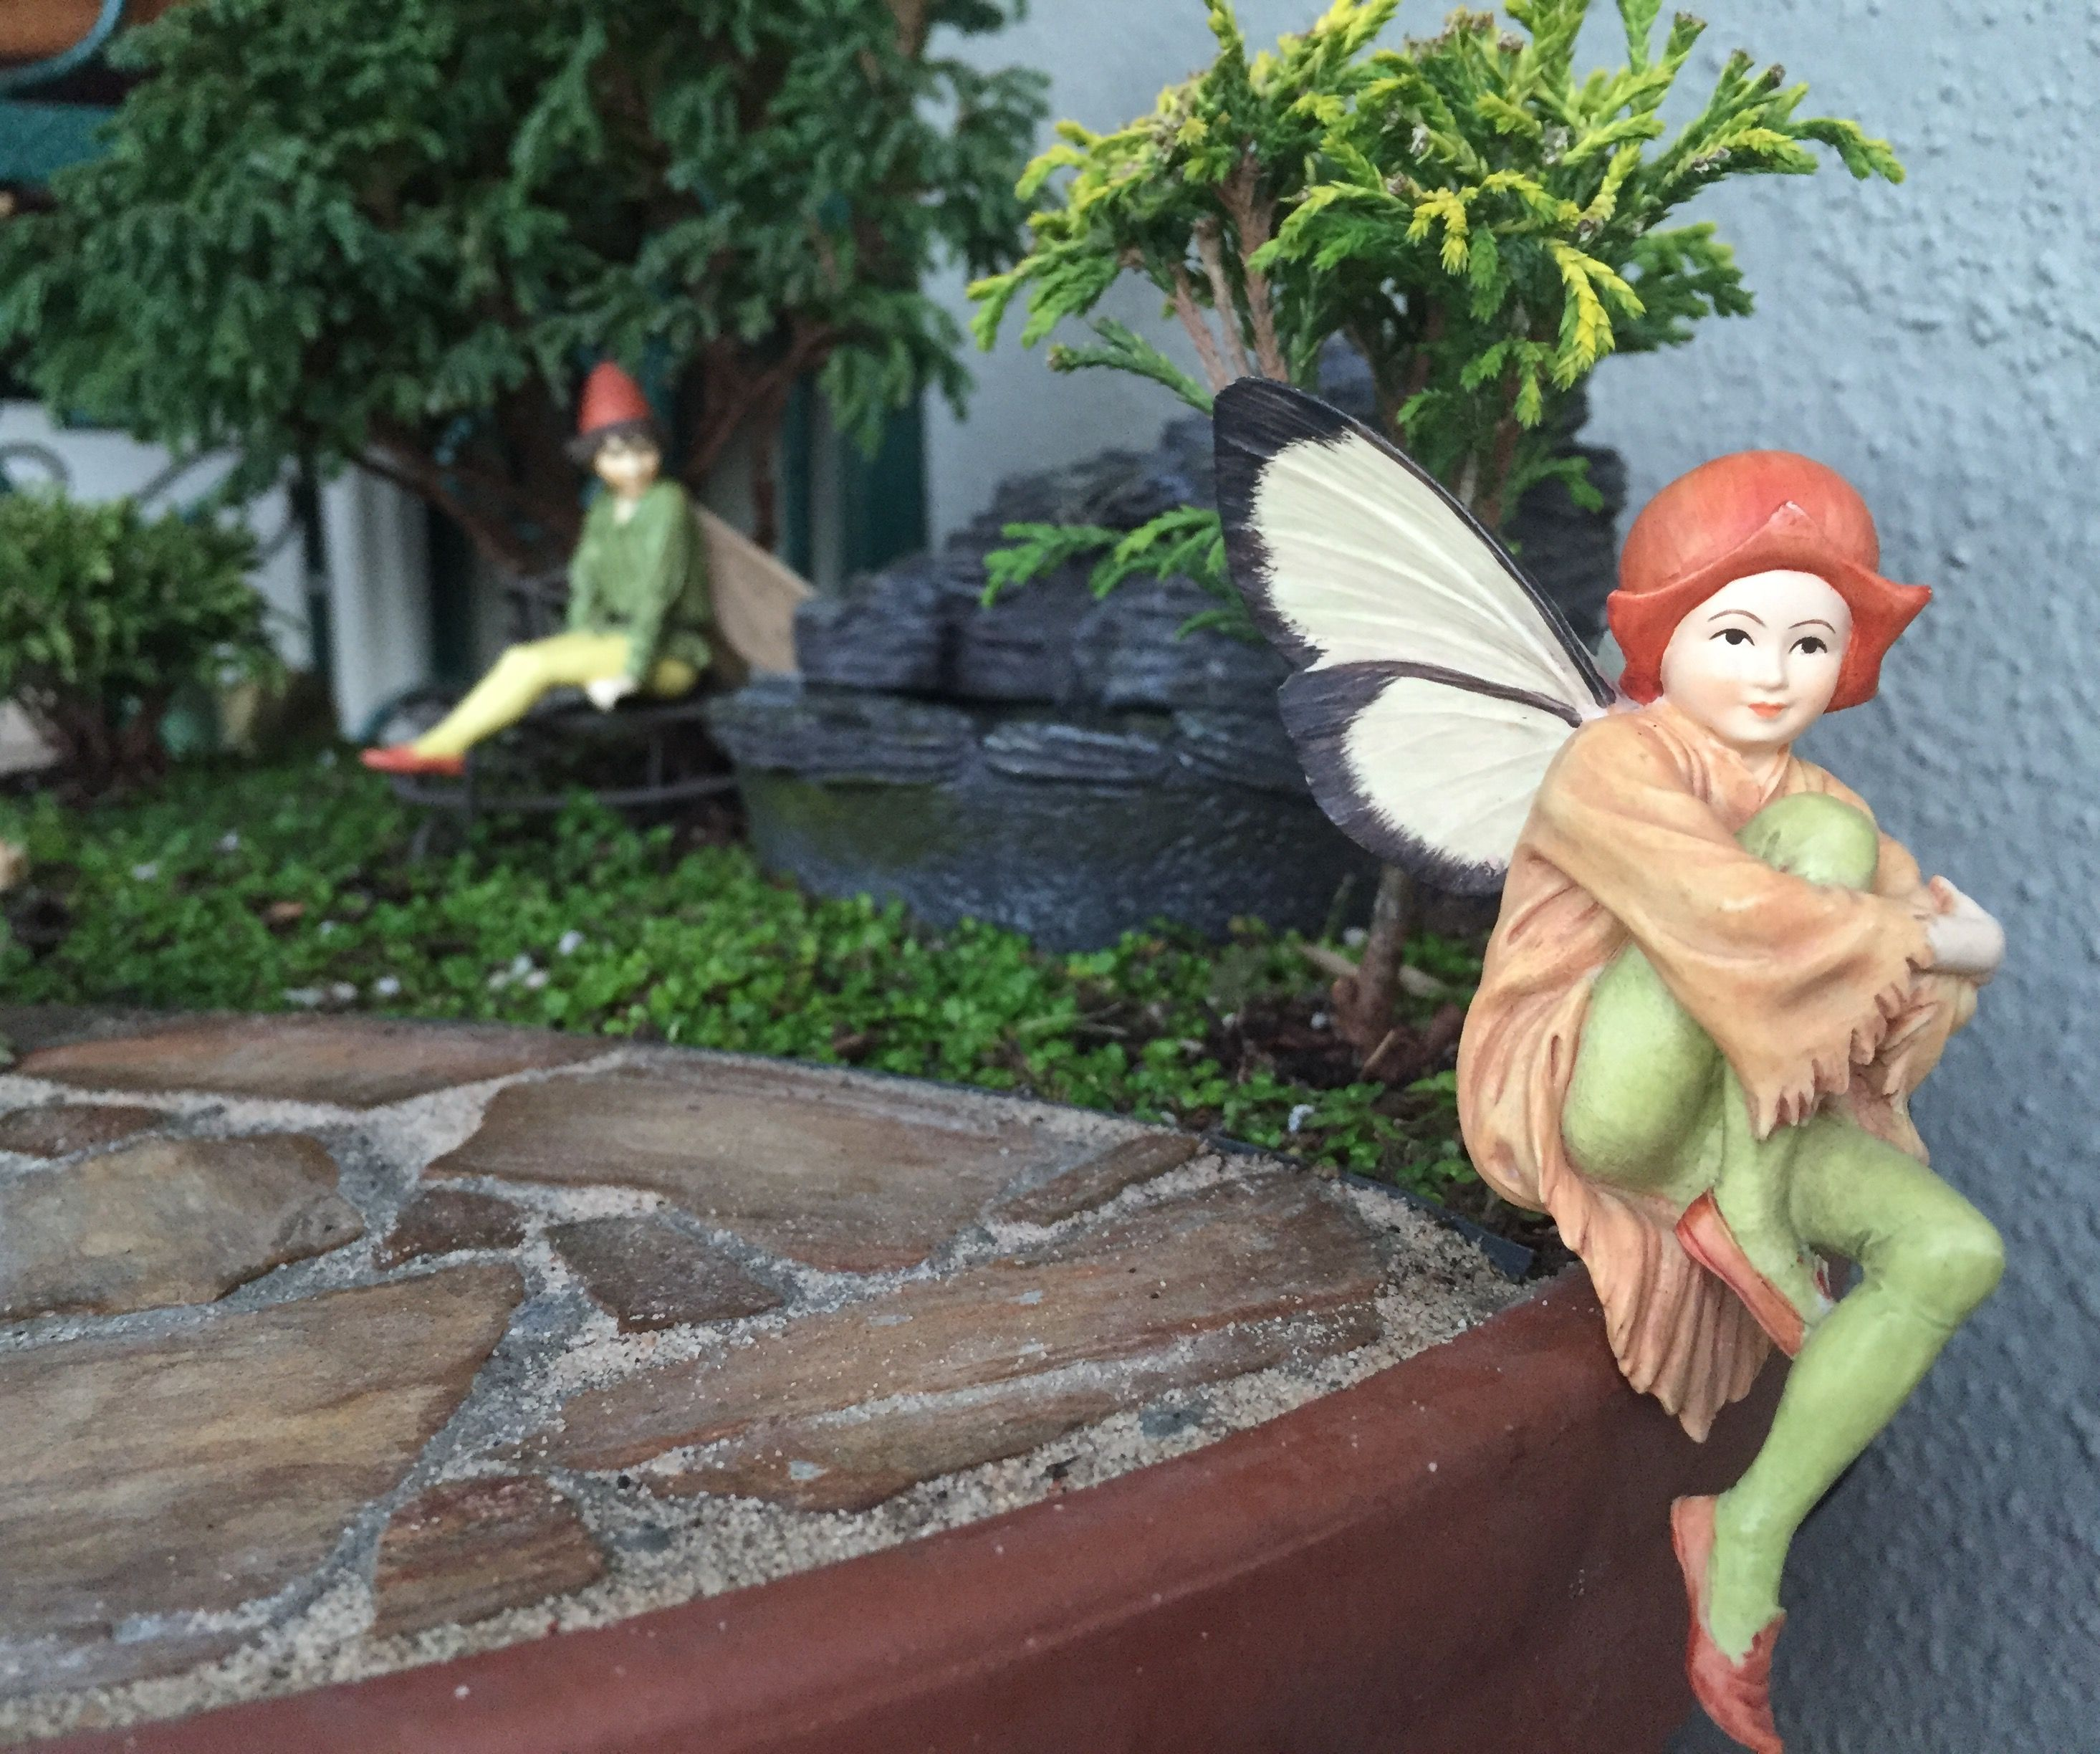 Miniature Fairy Garden - FOUNTAIN OF FAIRIES has two scenes going on; has a shale water fountain and flagstone patio. Scene one is about a boy fairy who has his eyes on a girl fairy who seems to be enjoying some fresh air. 2/2016